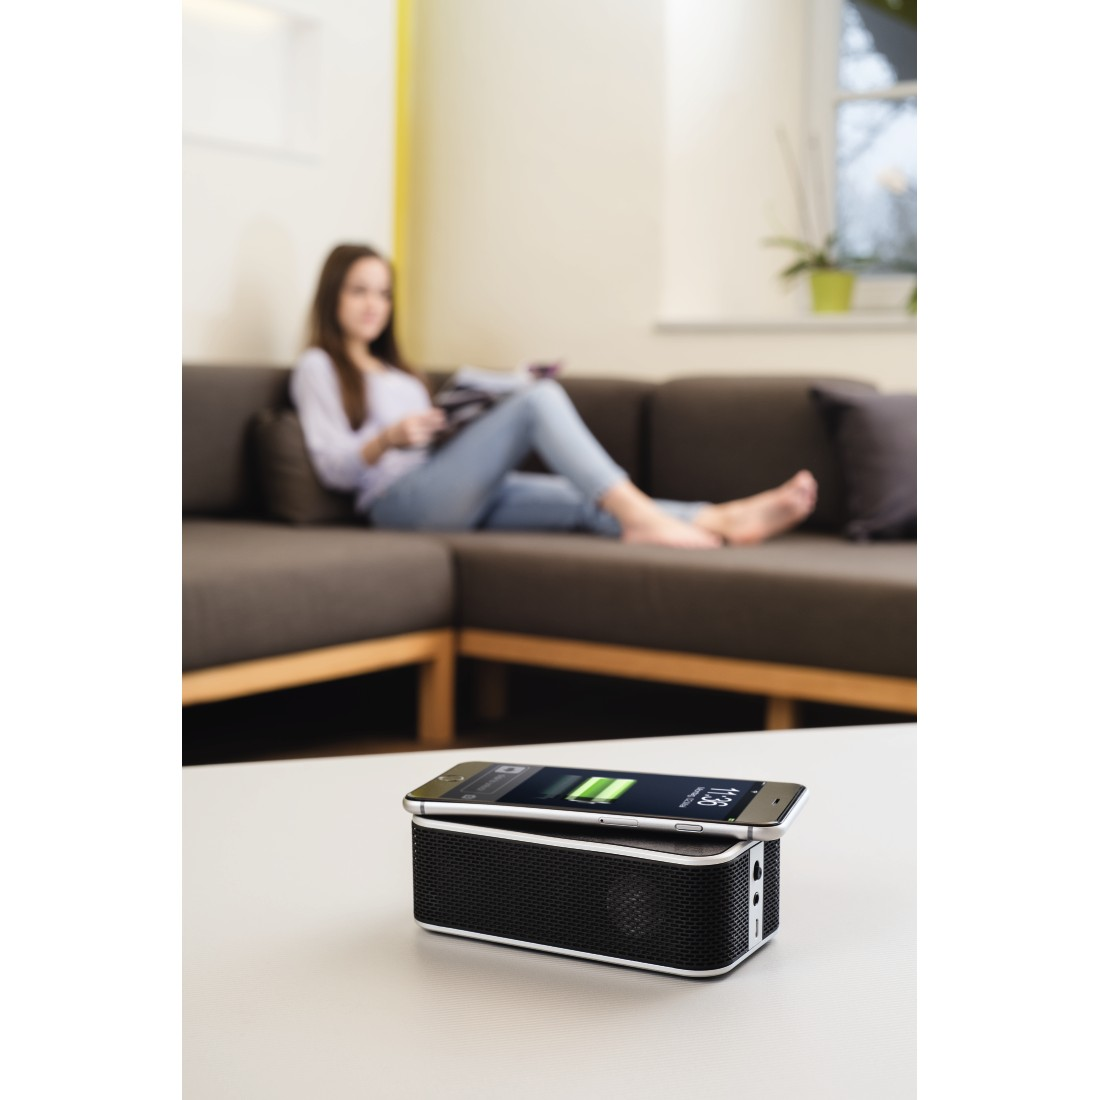 awx2 High-Res Appliance 2 - Hama, Bluetooth Speaker + Power Brick Qi Charger